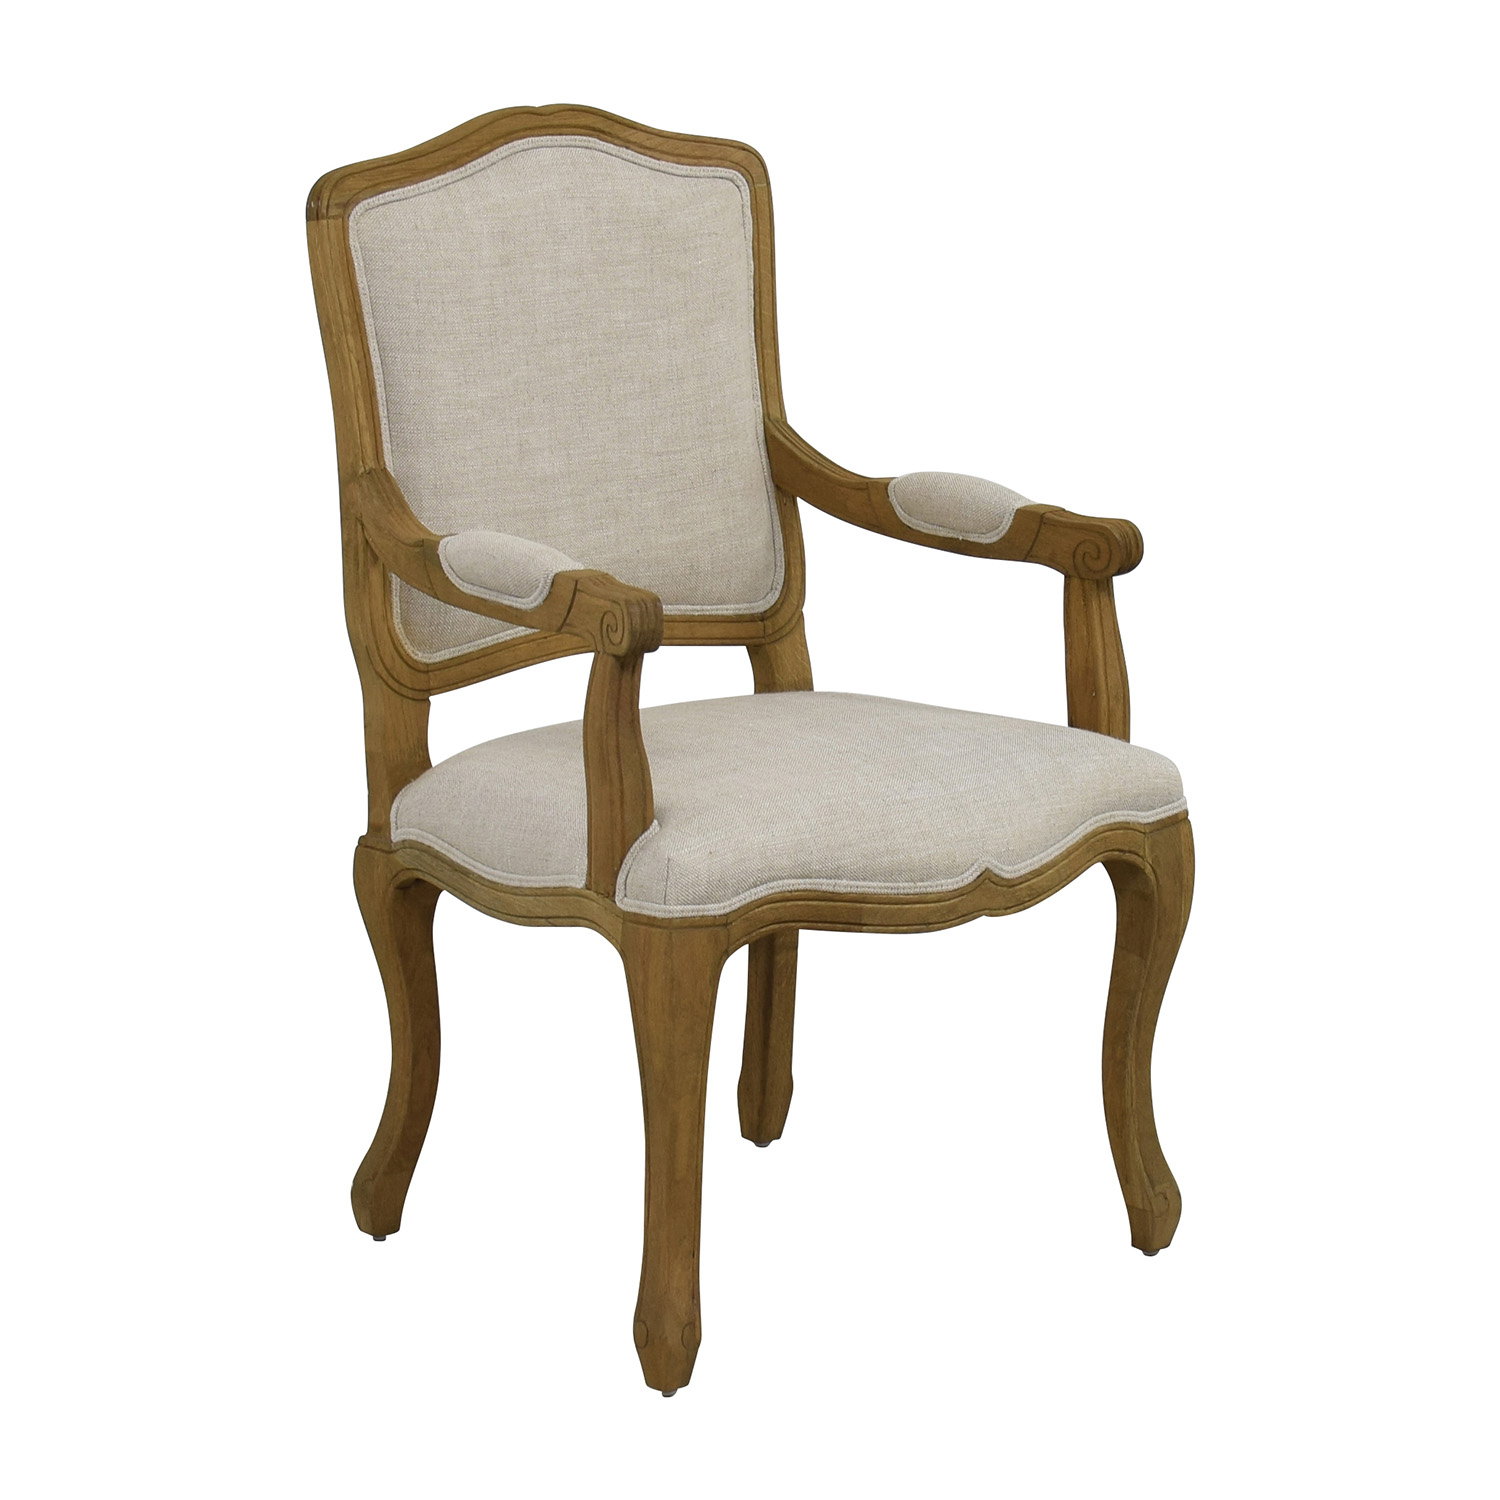 Restoration Hardware Restoration Hardware Vintage French Camelback Fabric Armchair Chairs